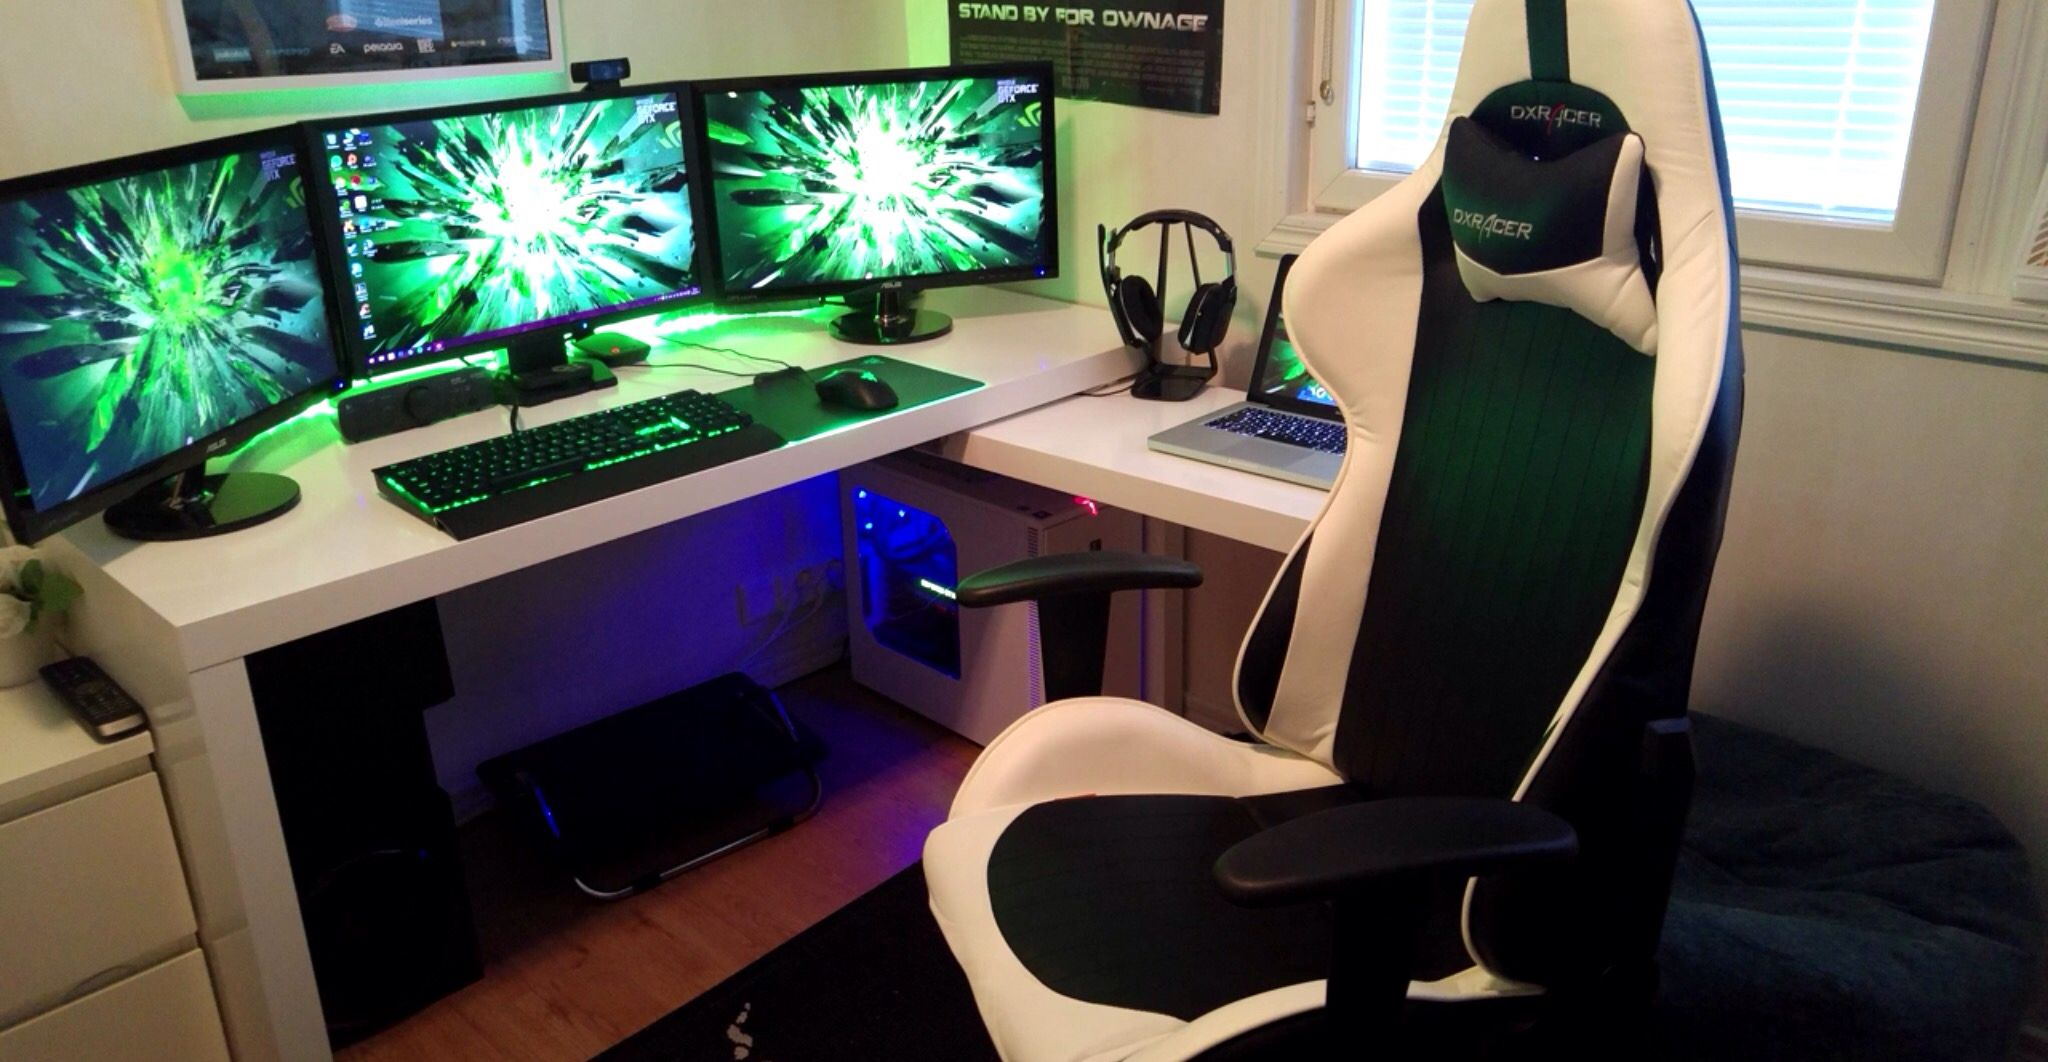 Green, Black, And White Triple Monitor Setup Striped